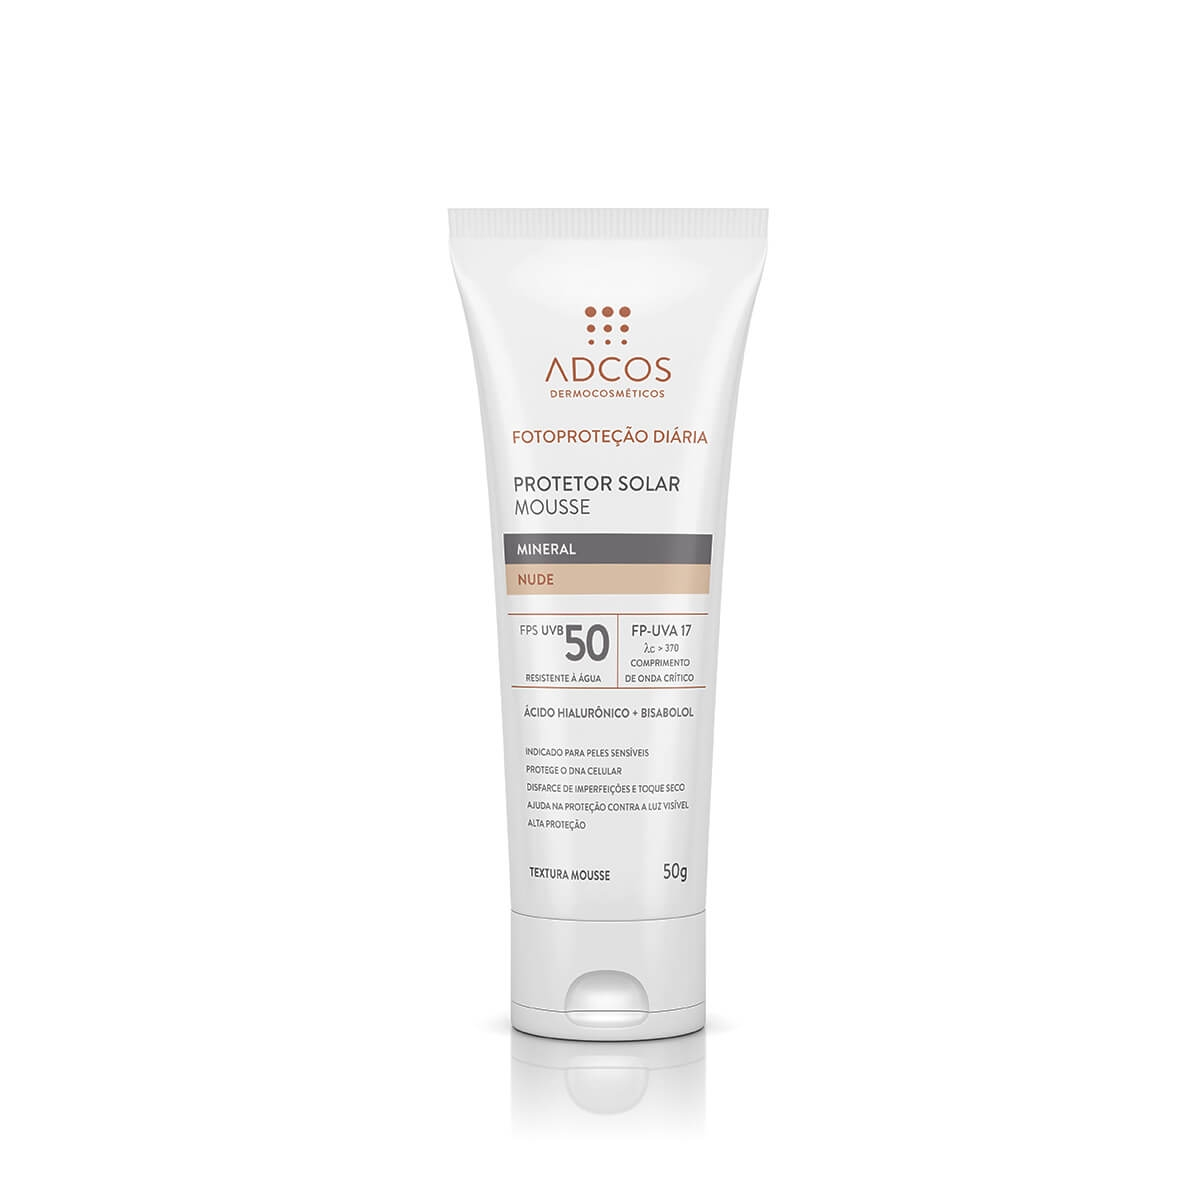 Protetor Solar Mousse Adcos Mineral Nude FPS50 50g